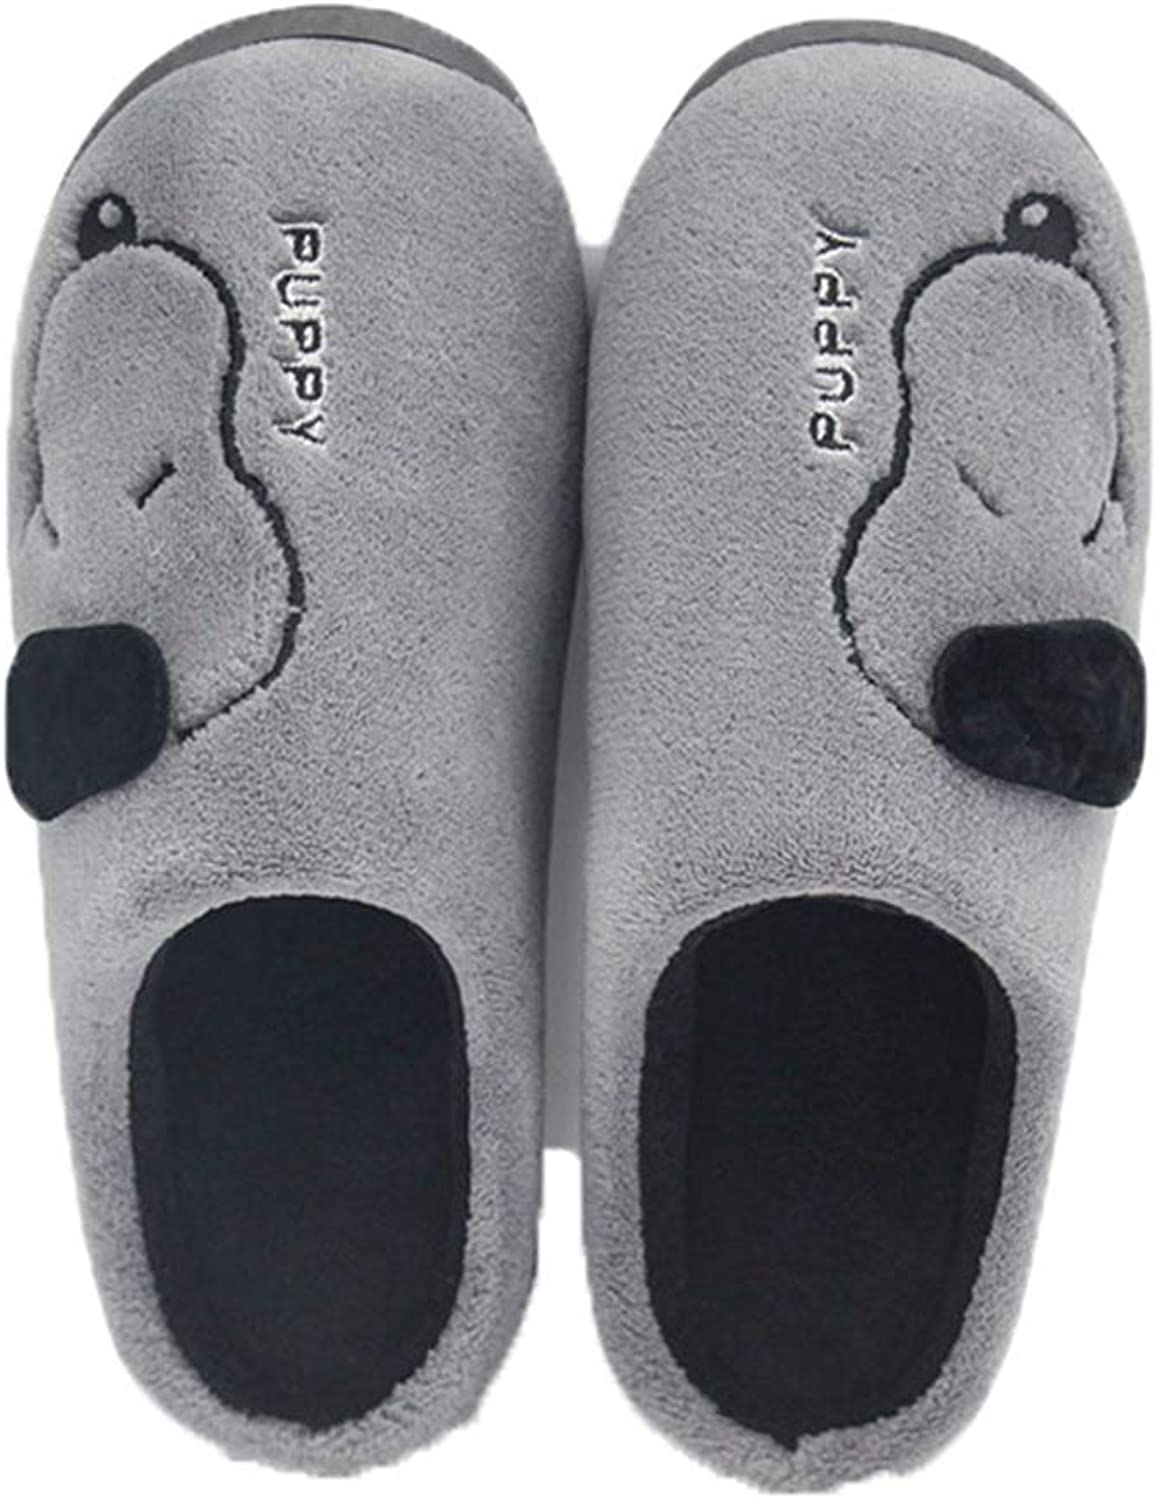 ASO-SLING Women's Cute Puppy Plush Slippers Cozy Warm Memory Foam House Slipper Fuzzy Fleece Indoor Non Slip Home shoes